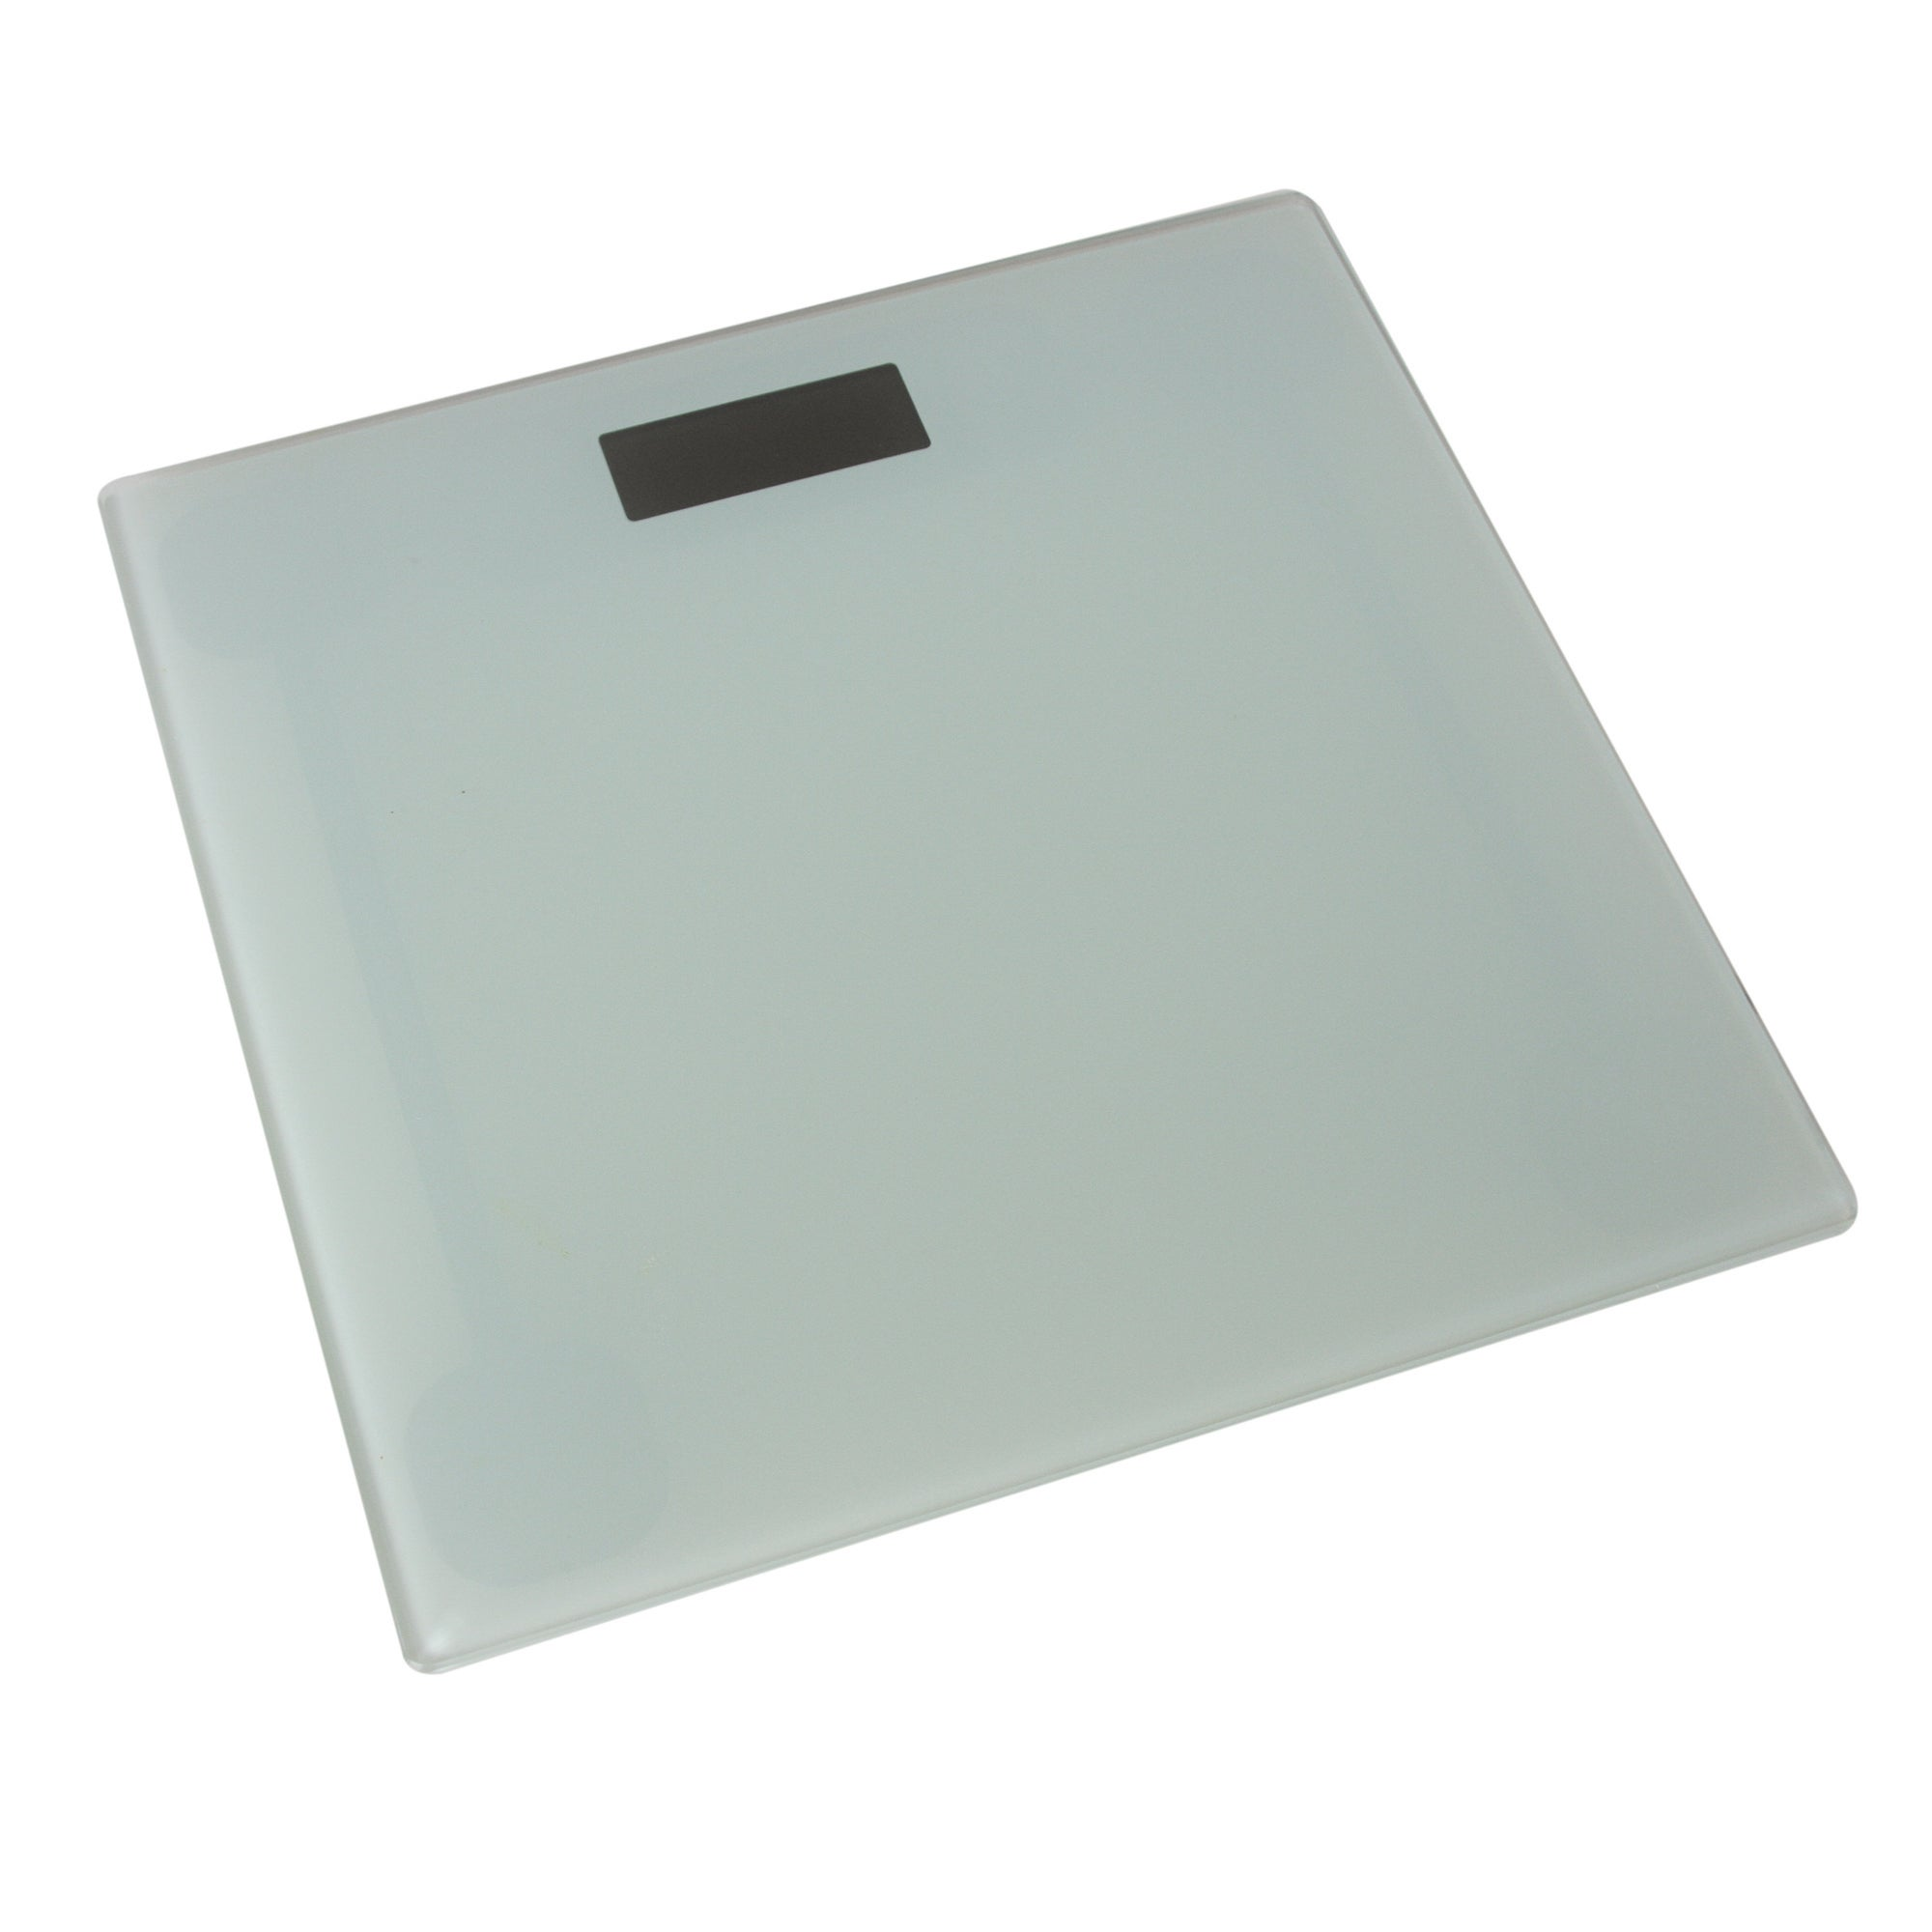 Egyptian Coordinates Collection Electronic LCD Scales